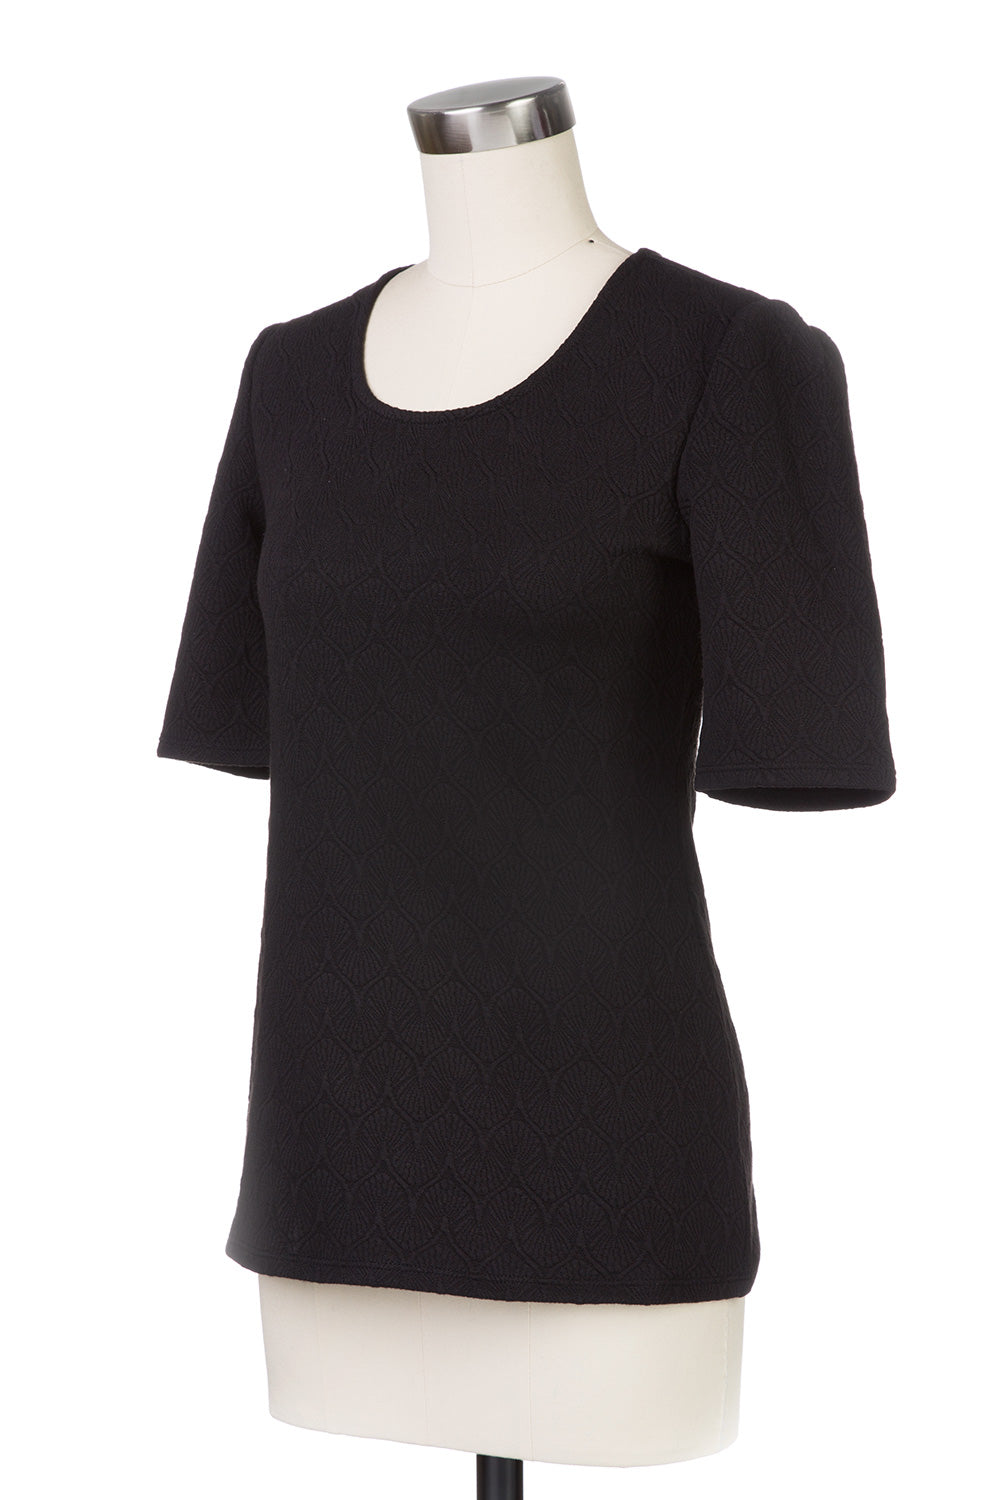 Type 4 Poetic License Top in Black